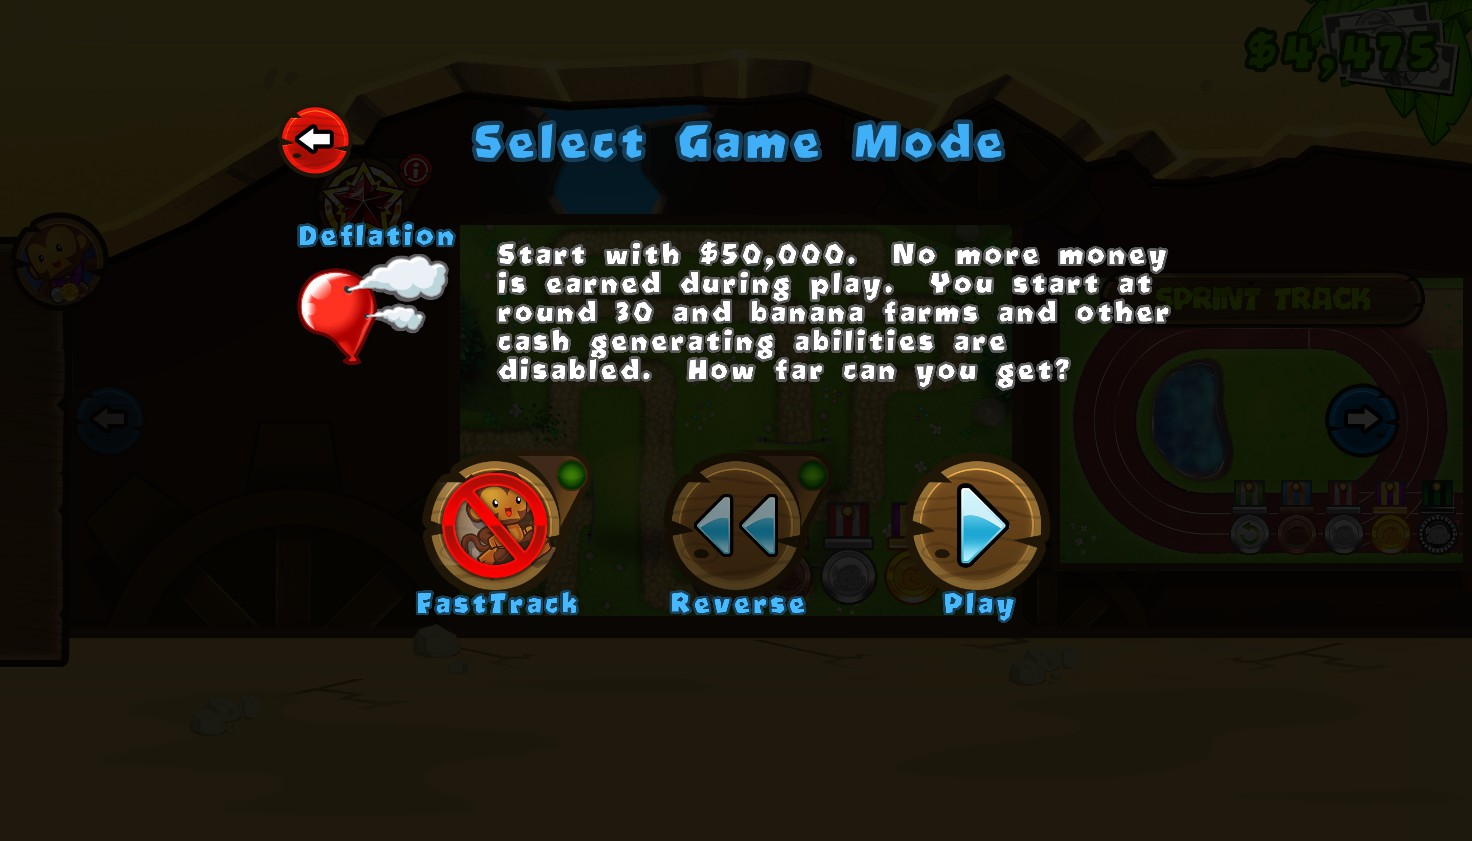 Deflation Mode | Bloons Tower Defense 5 Wiki | FANDOM powered by Wikia